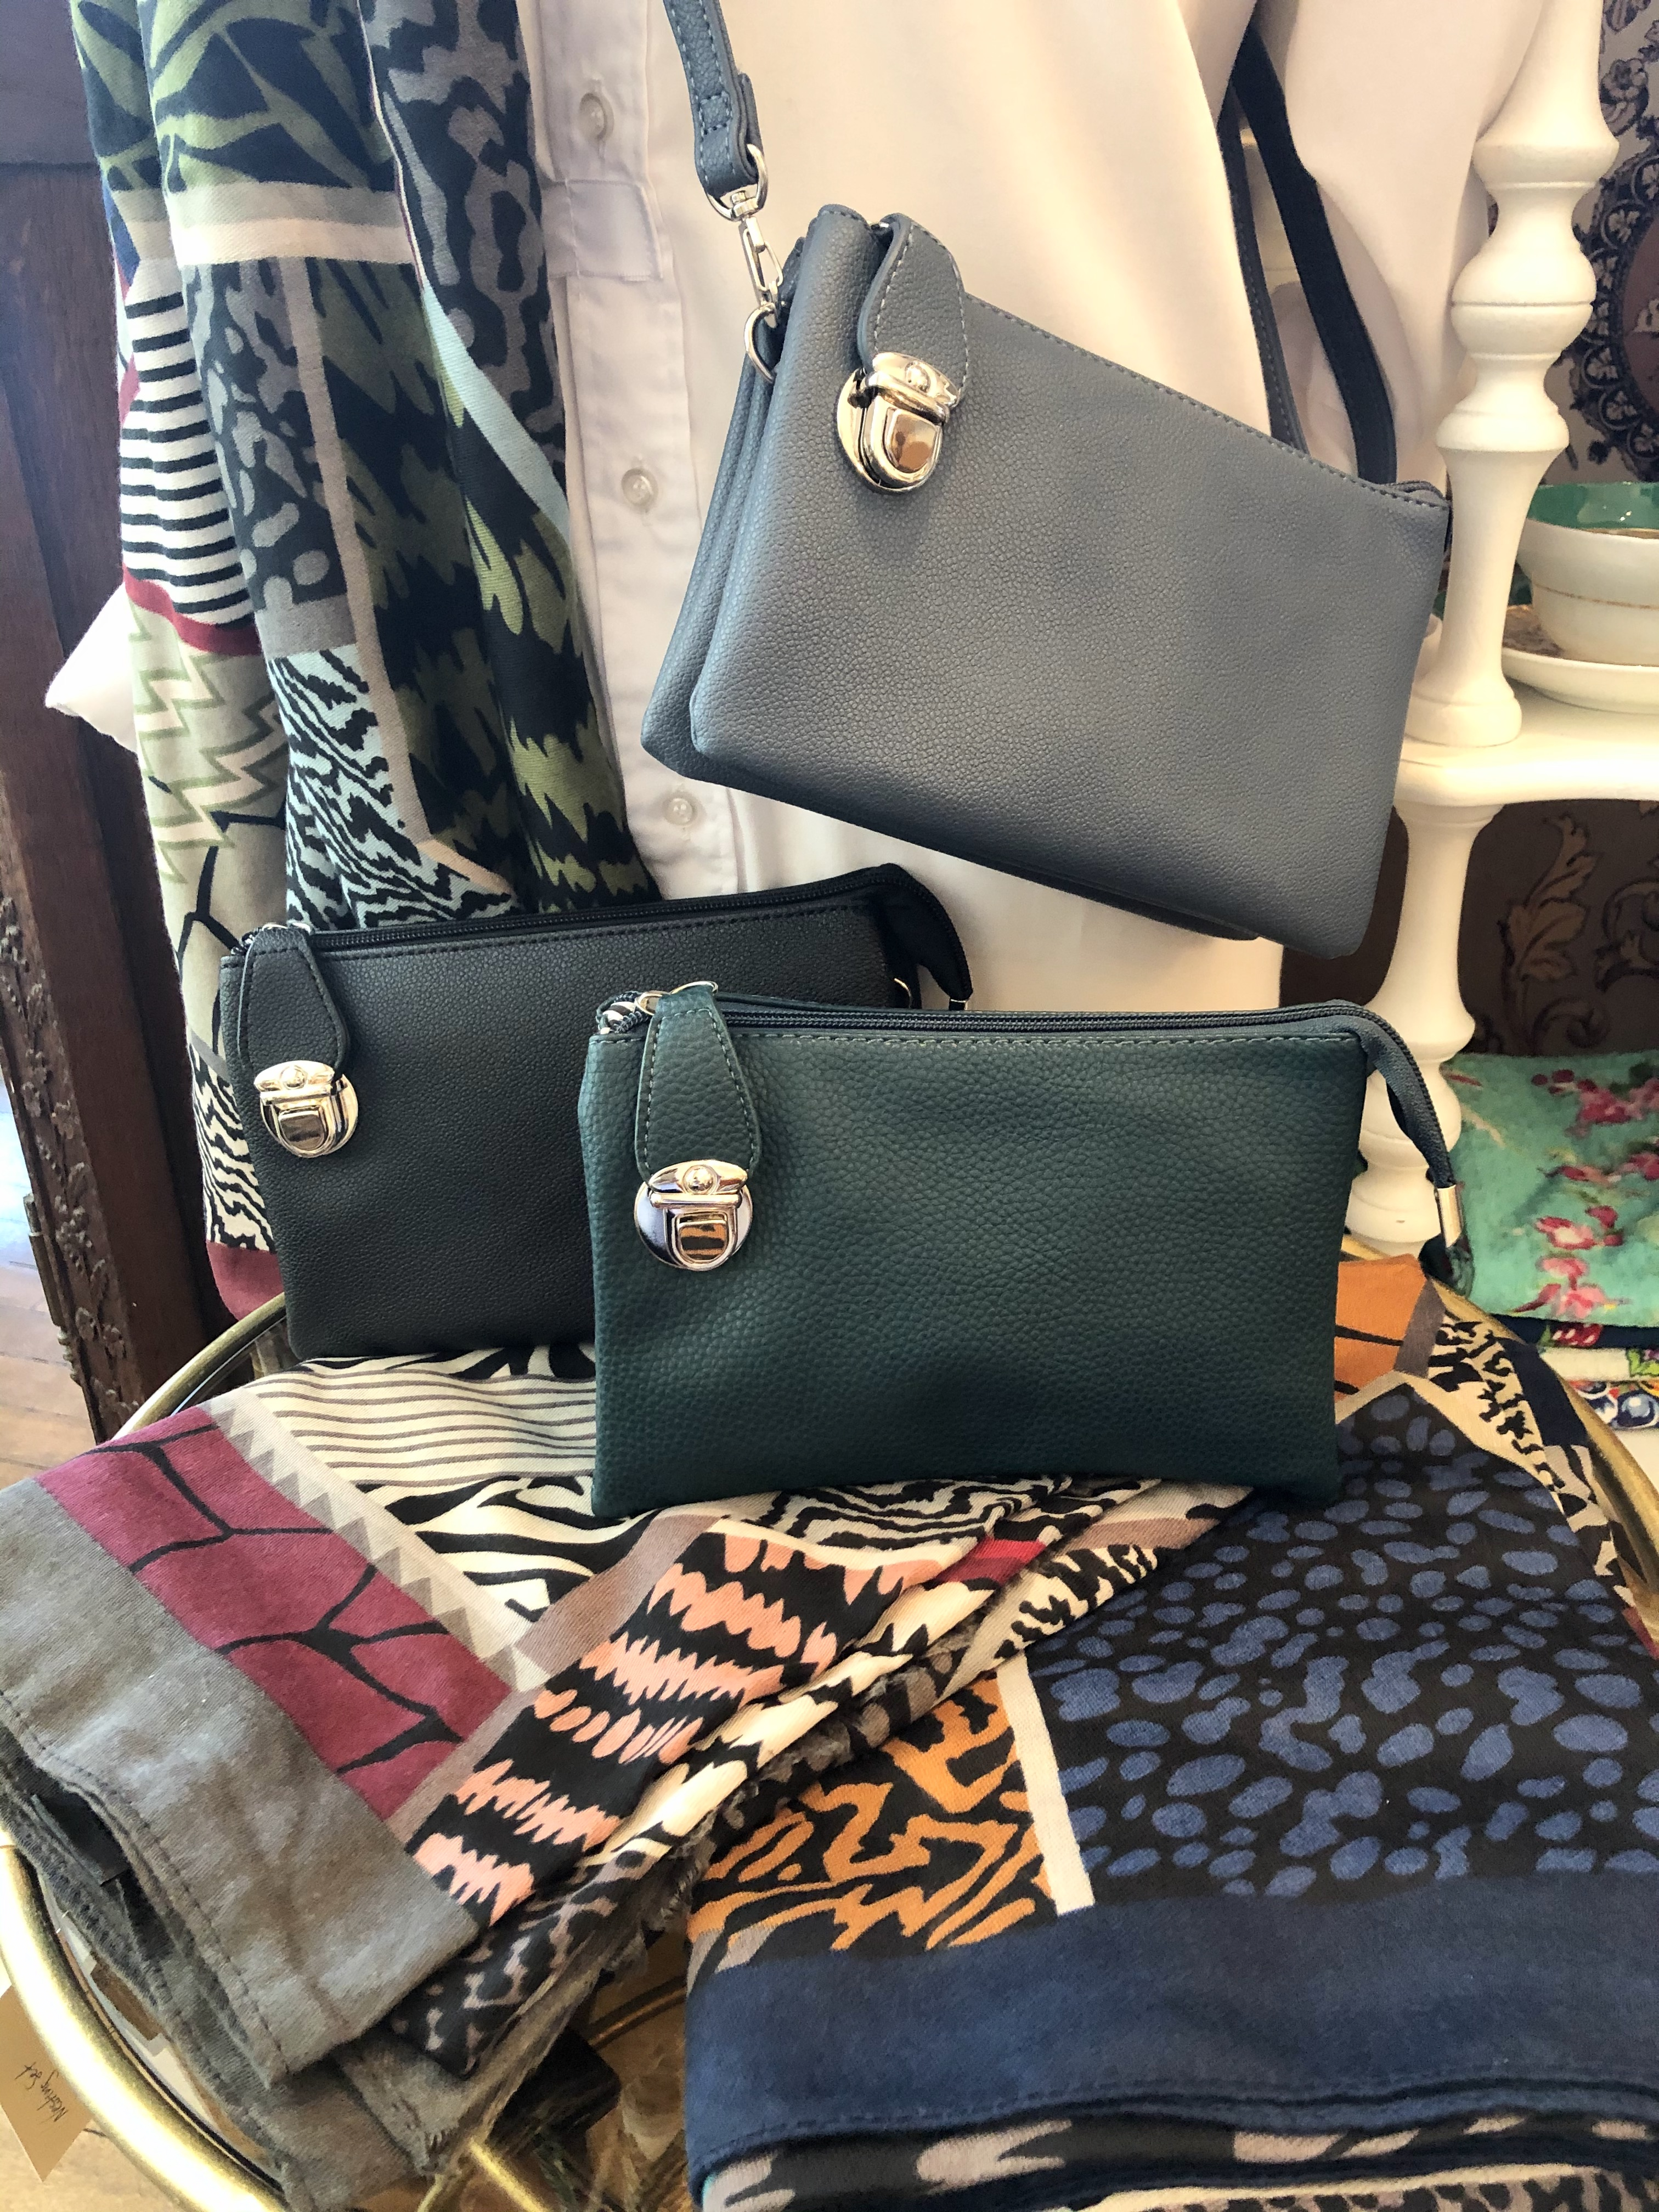 Purses and Fall Scarves